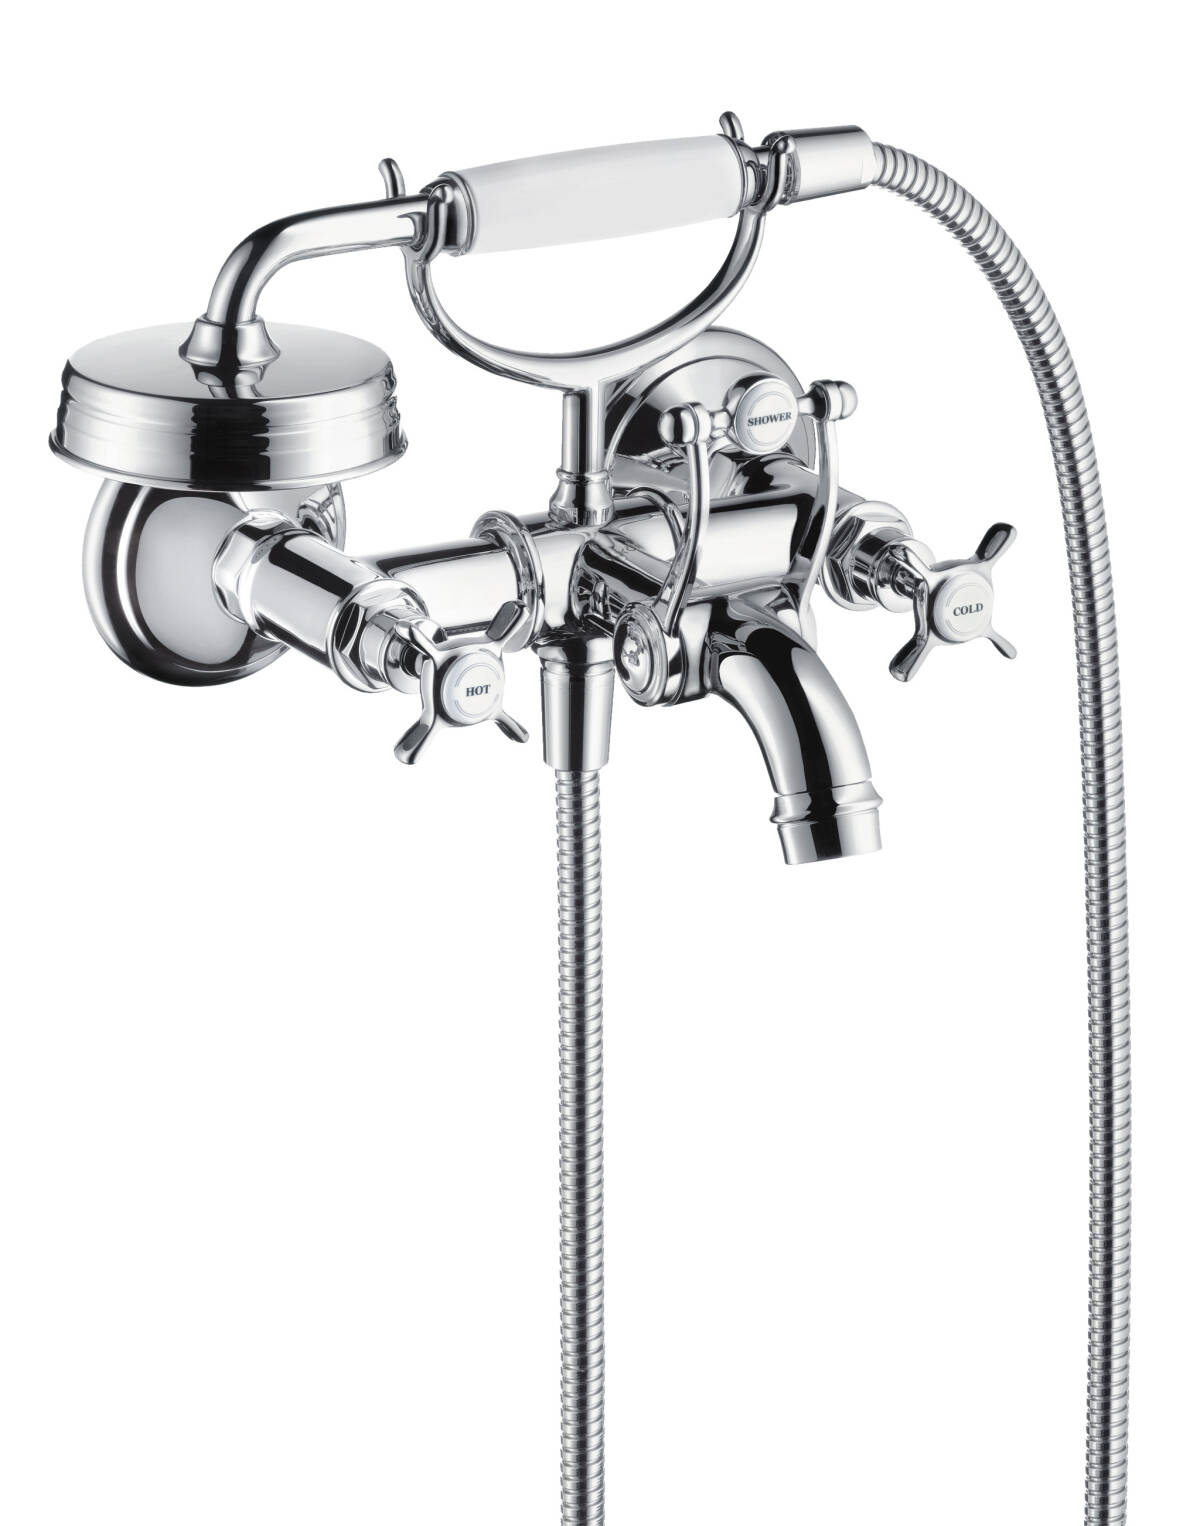 2-handle bath mixer for exposed installation with cross handles, Chrome, 16540000